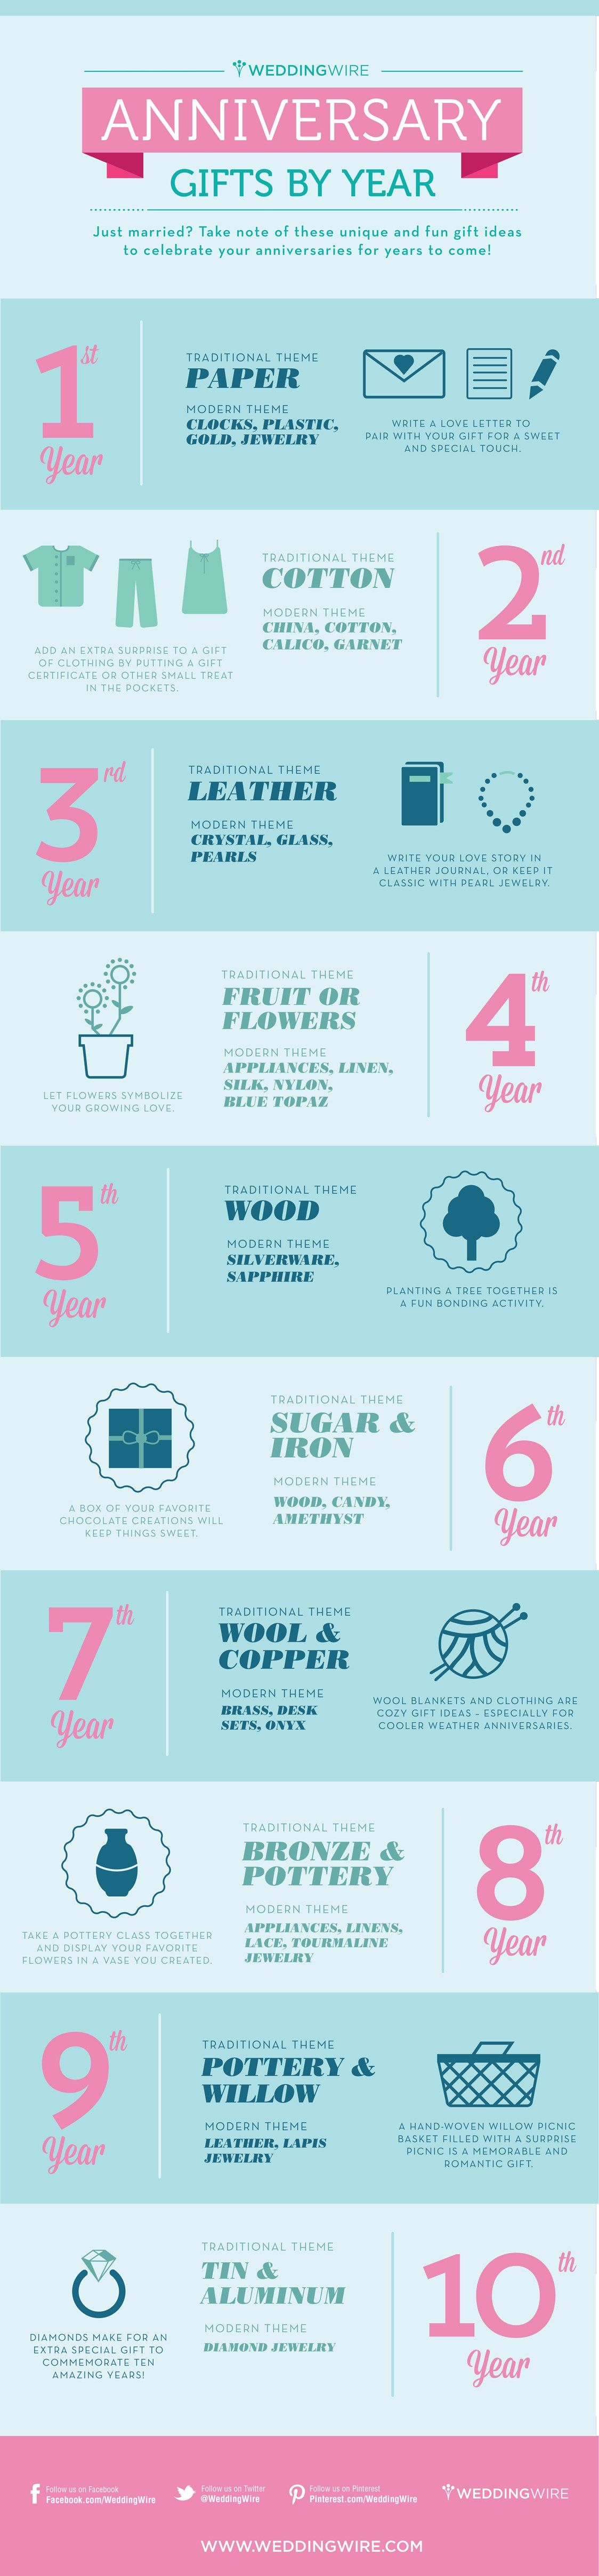 Infographic: Anniversary Gifts by Year | Wedding anniversary gifts ...